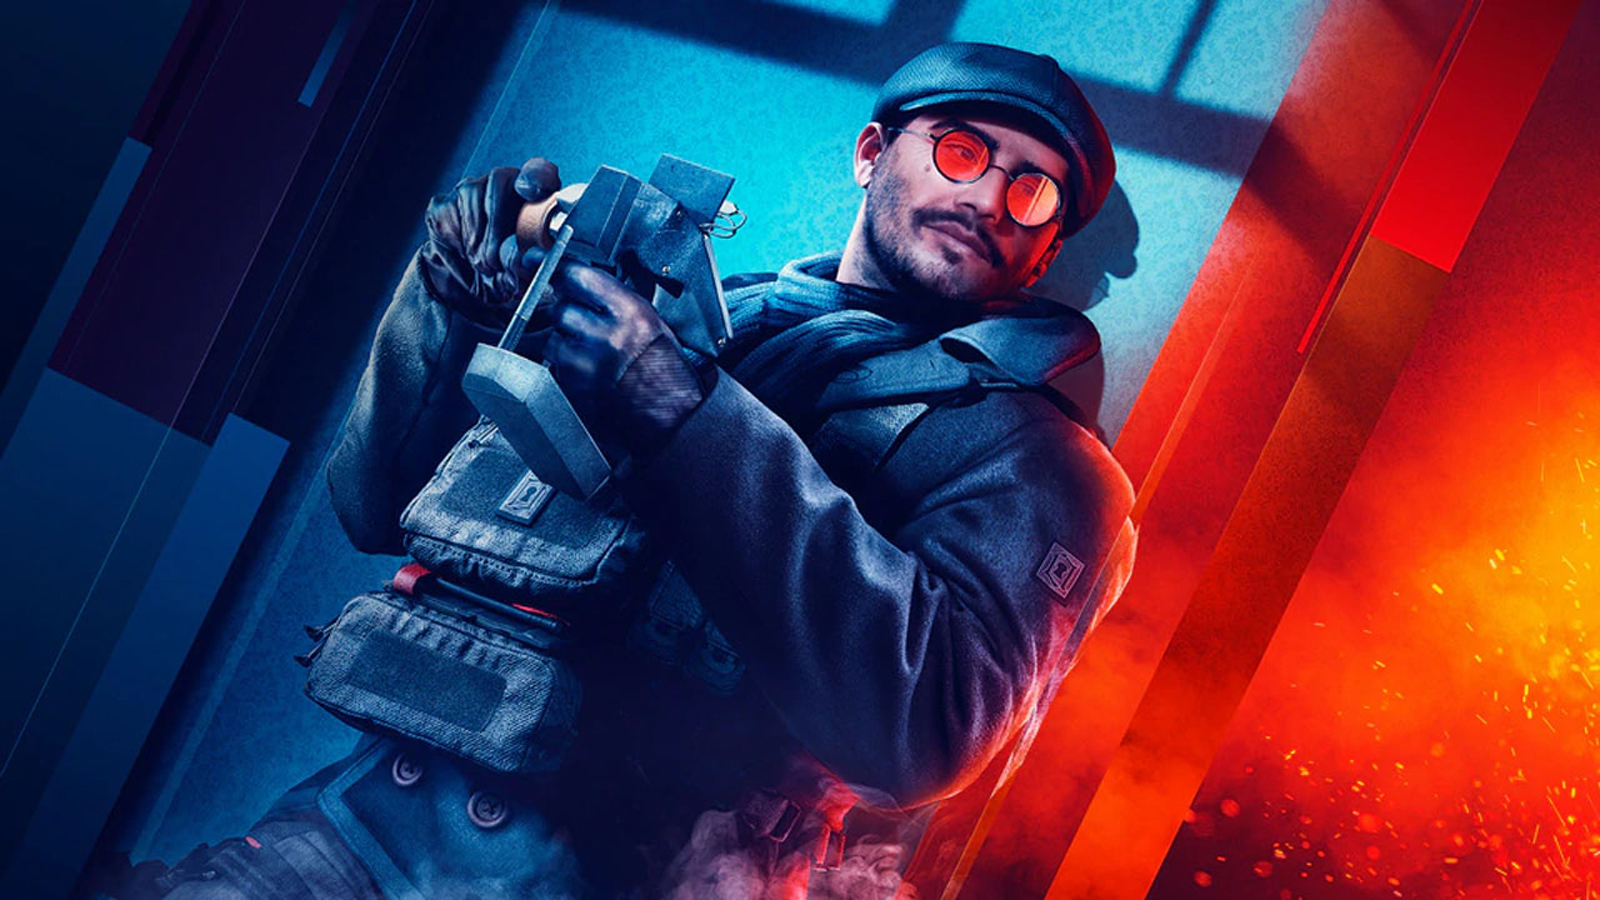 Flores in Rainbow Six Siege